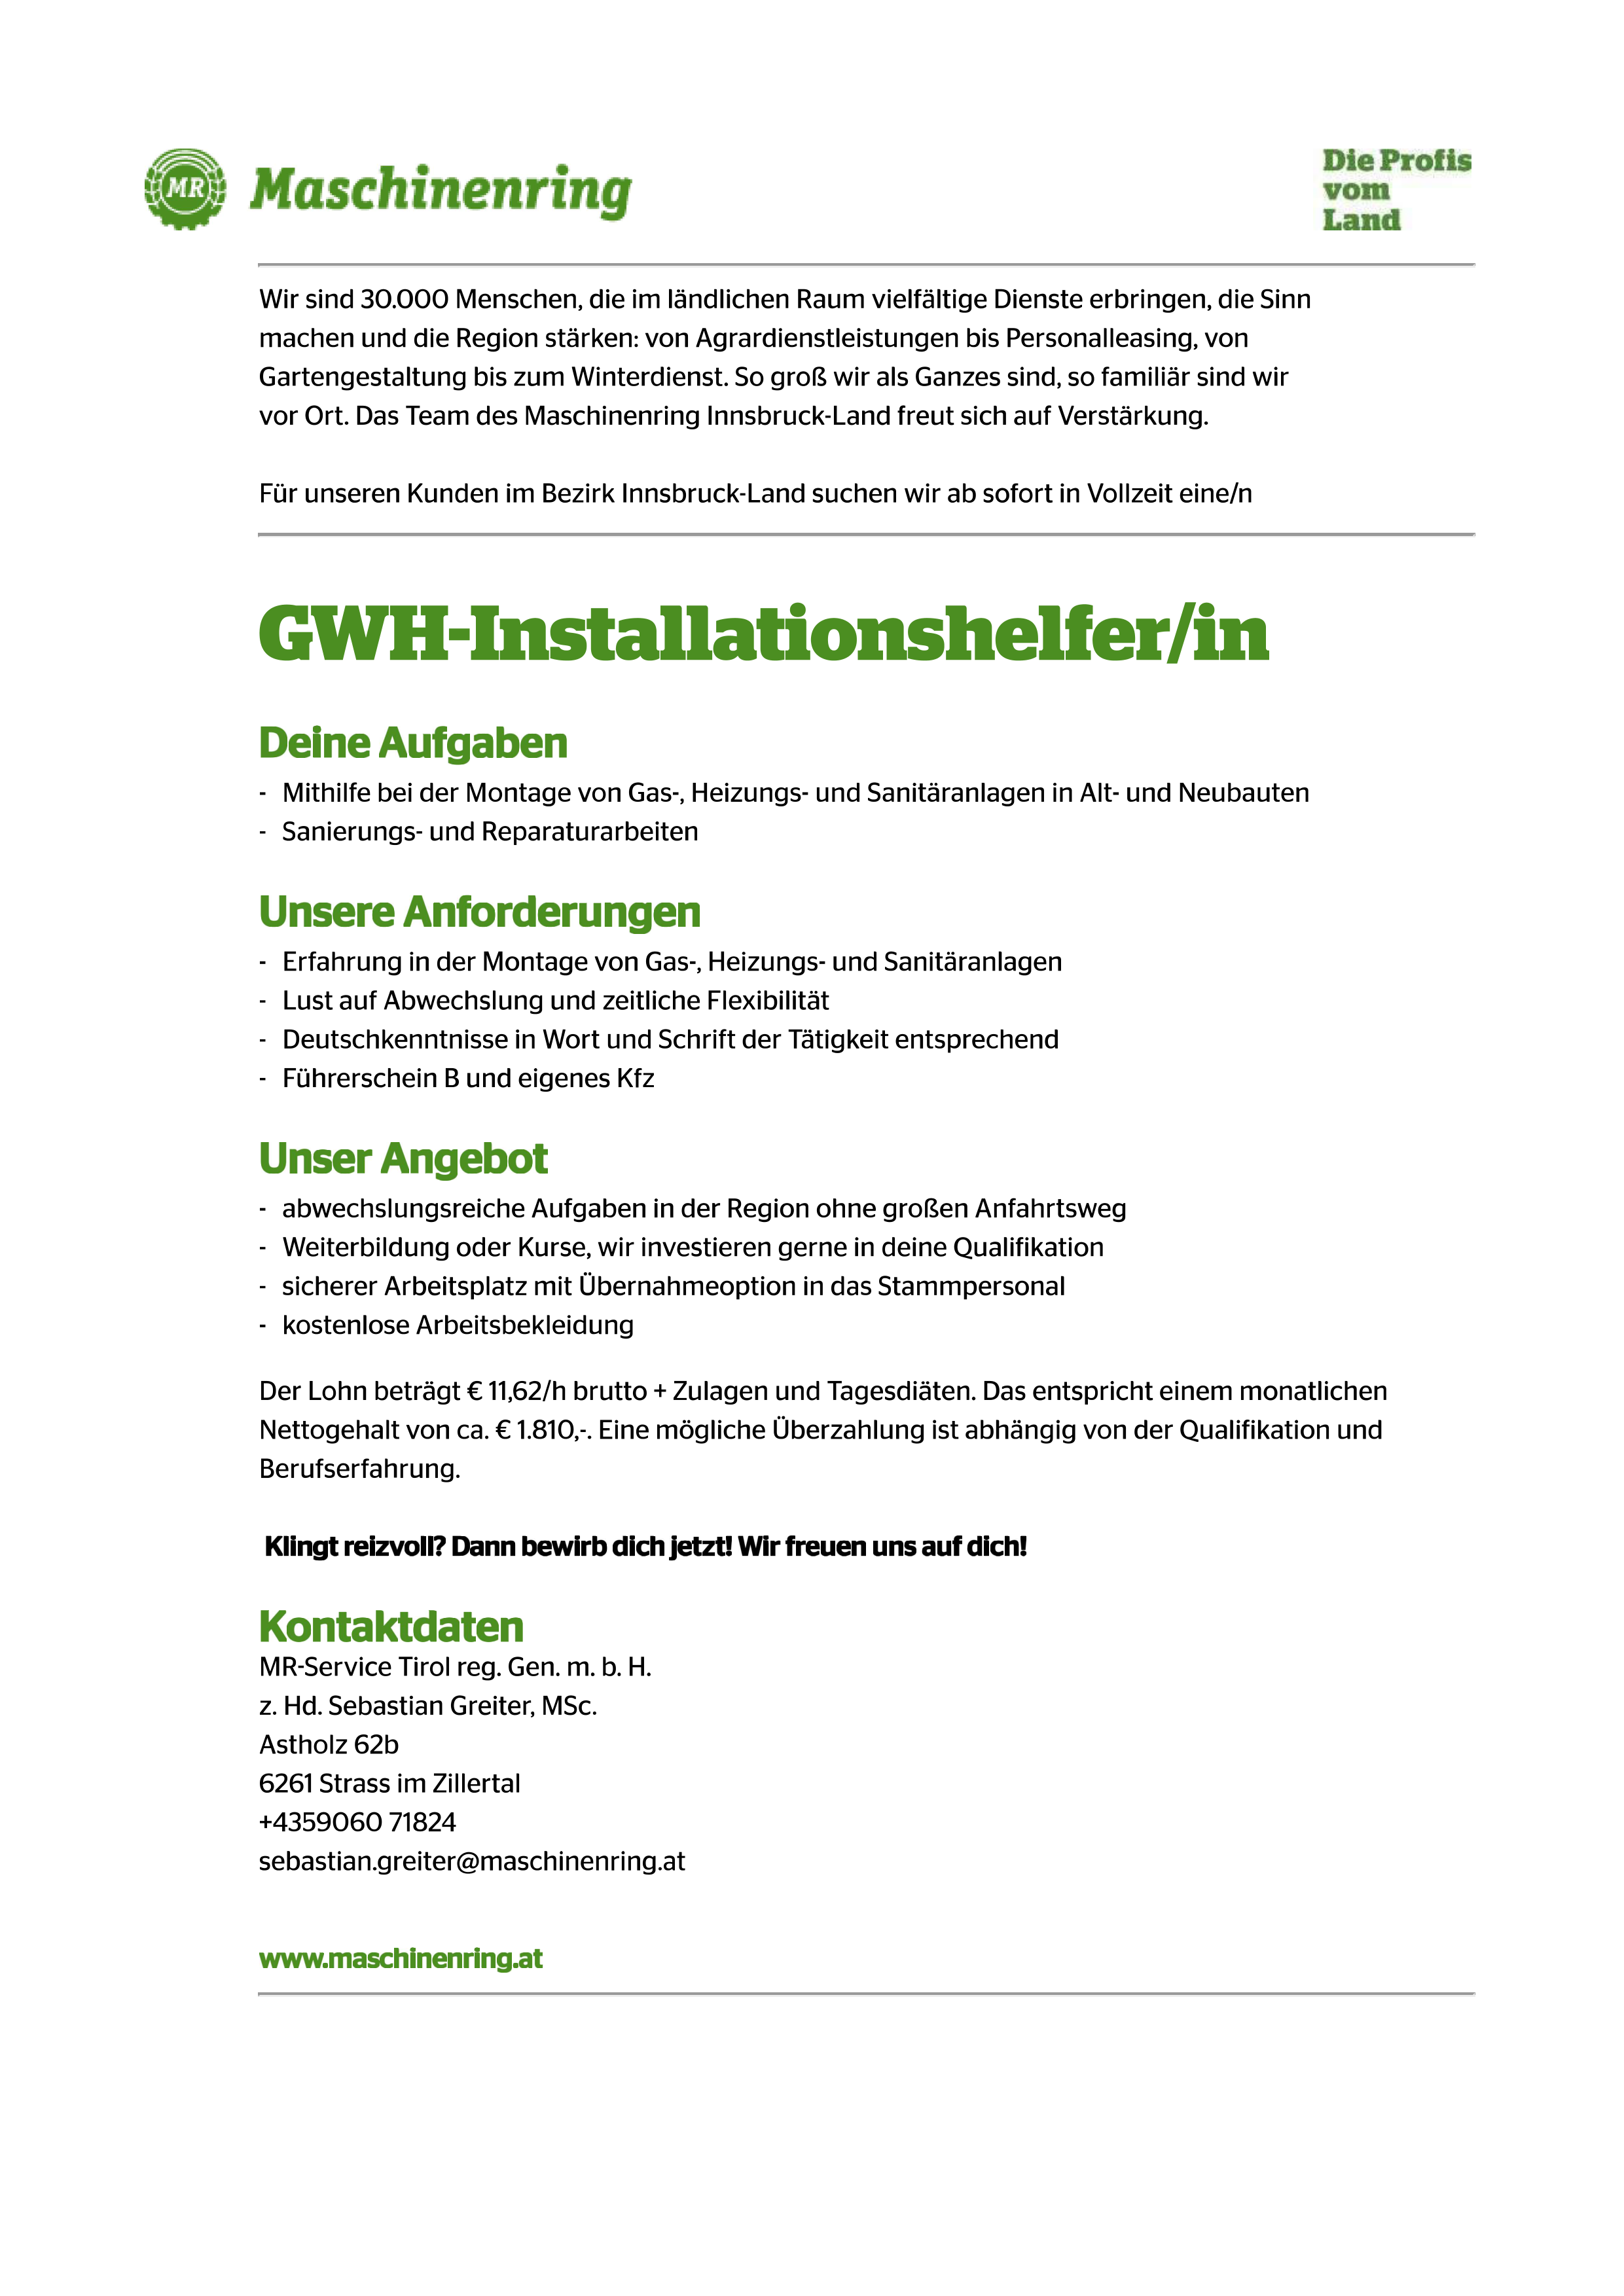 GWH-Installationshelfer/in